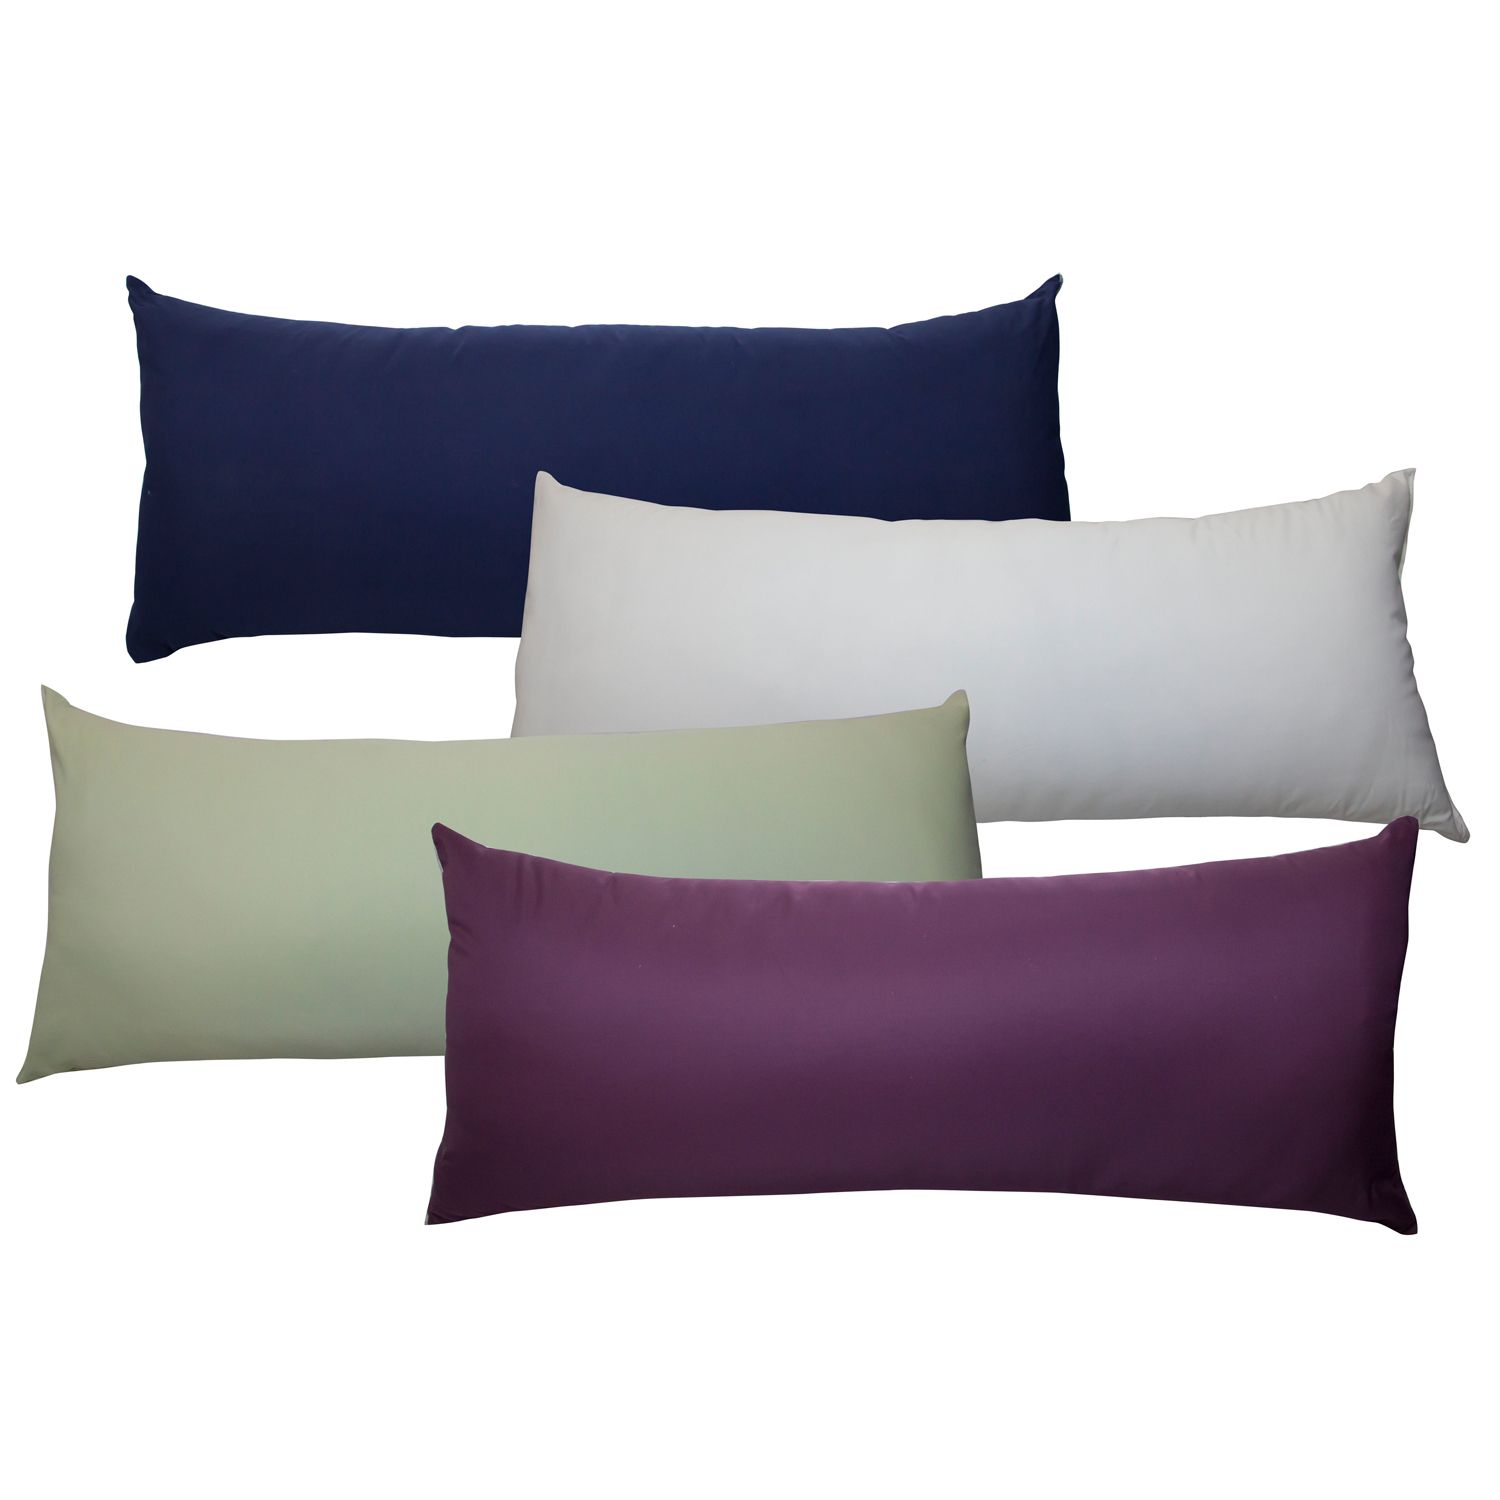 Specialty Pillows Pillows Bed & Bath